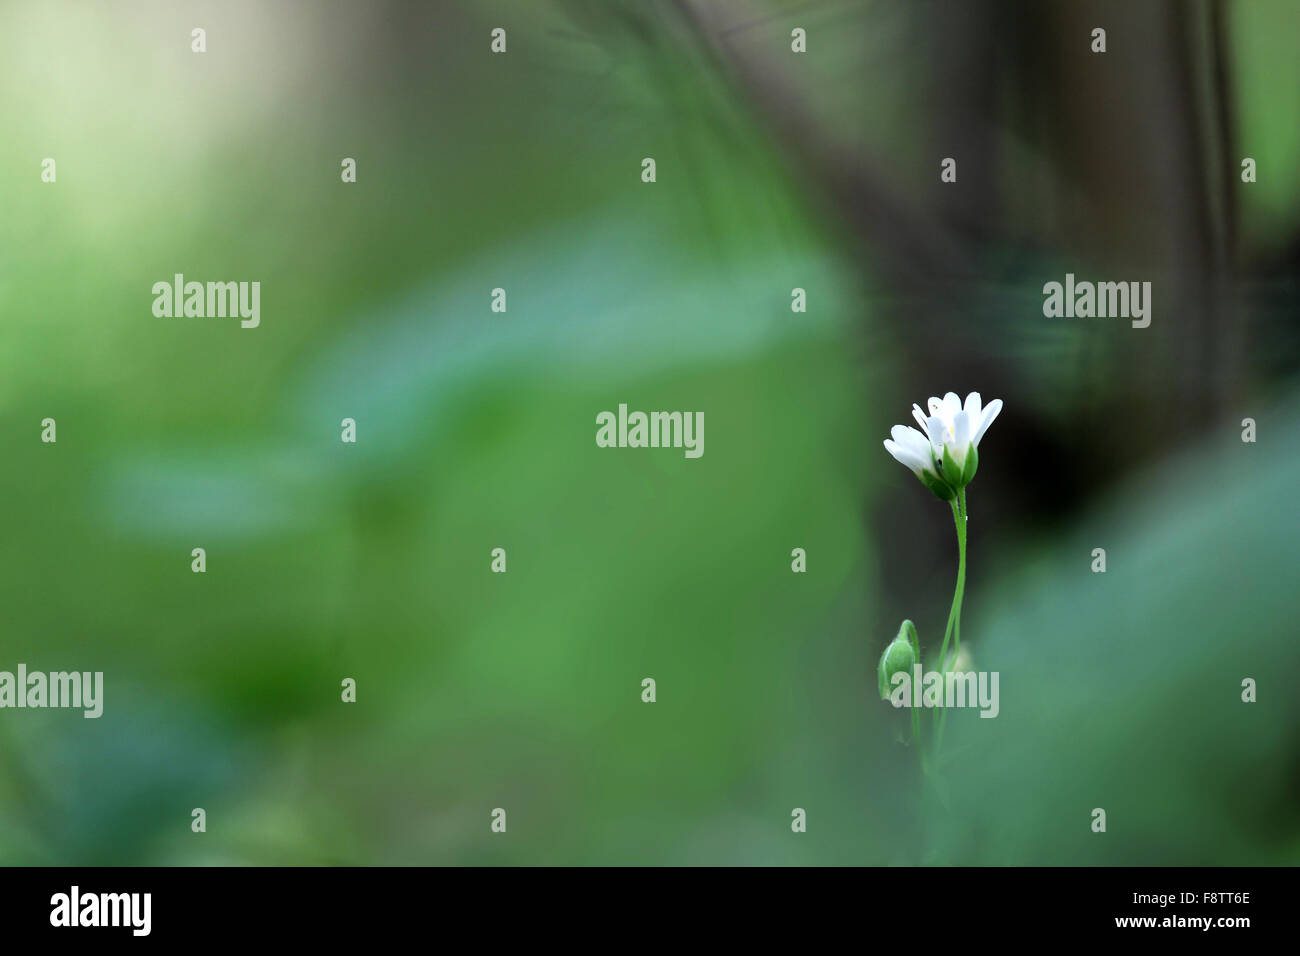 Macrophotography of single green-white flower on the green and brown blurred background - Stock Image